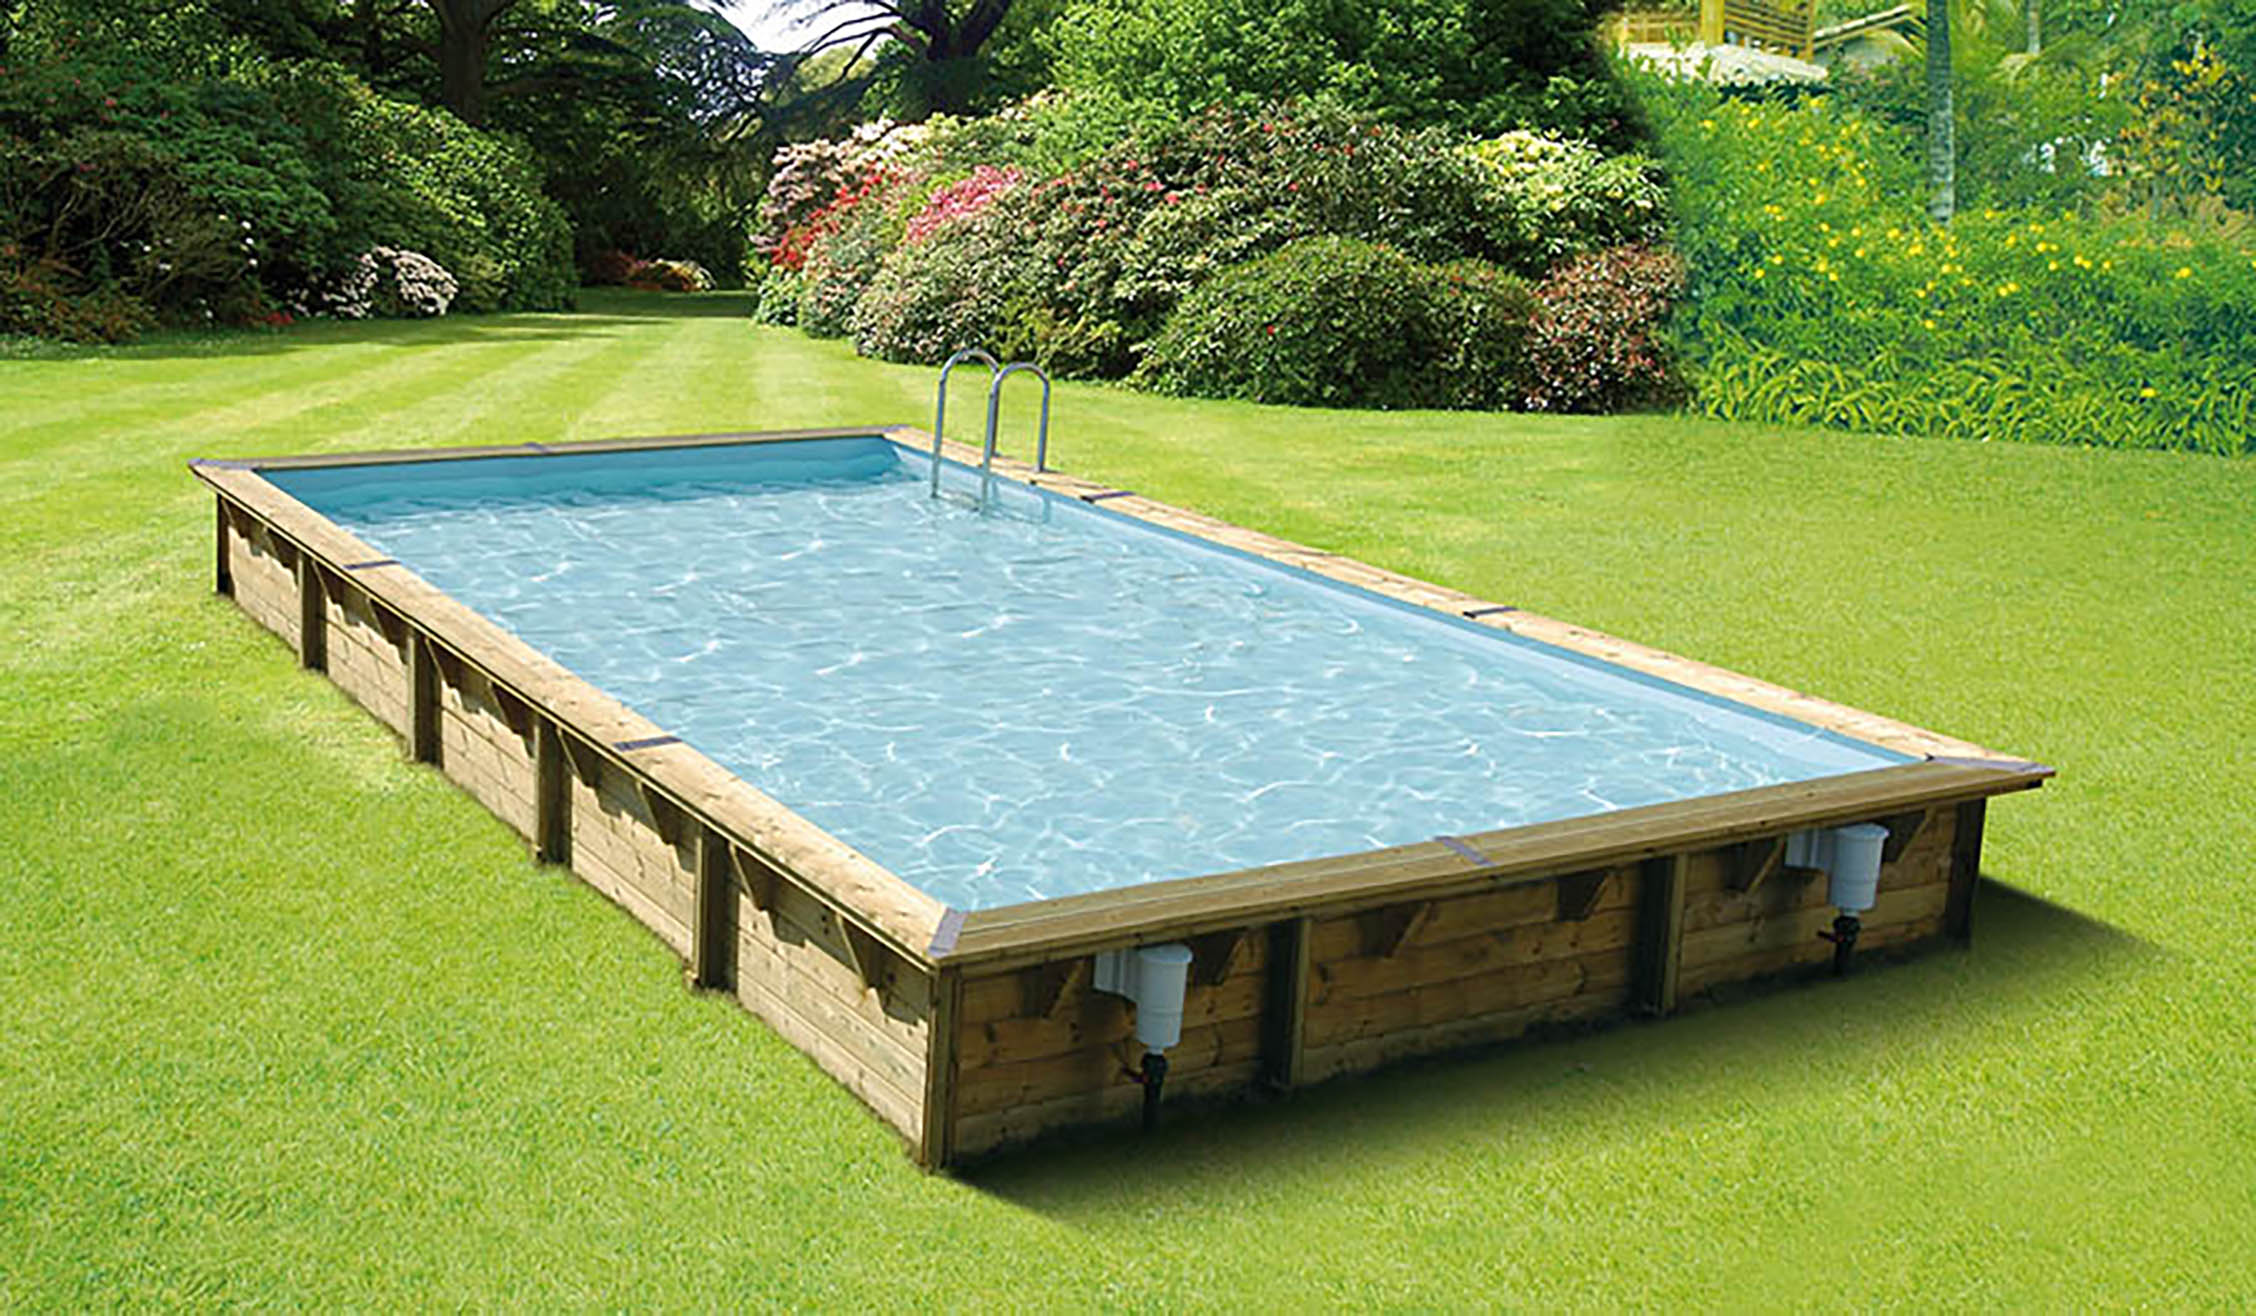 Amenagement piscine bois hors sol id es for Installation piscine bois